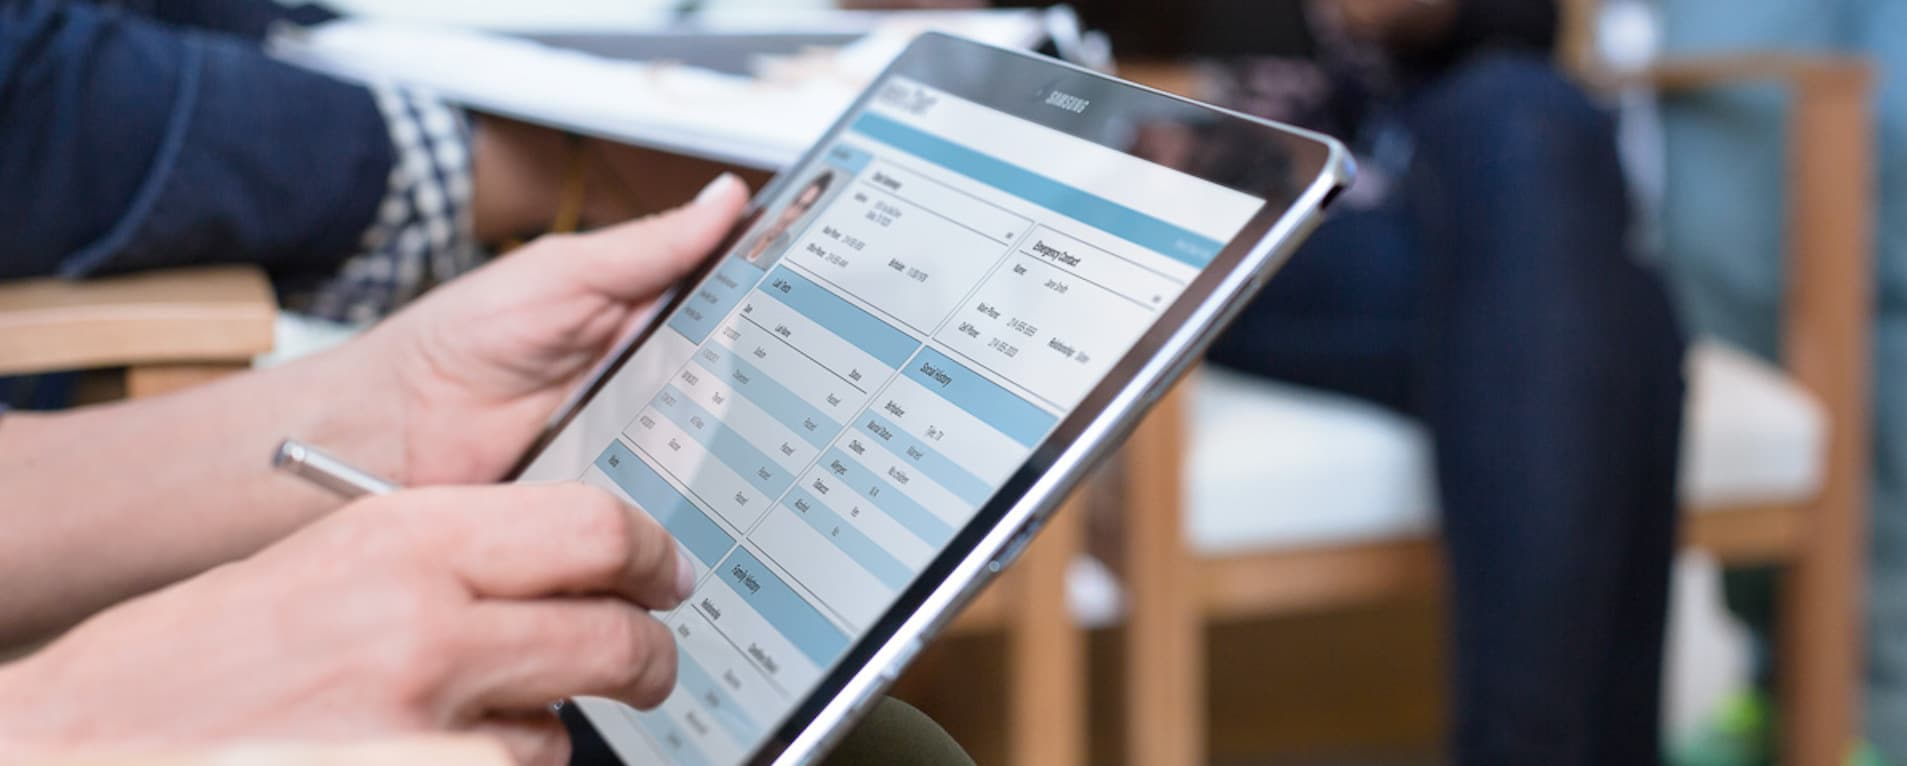 5 Tips For Choosing An EMR System For Your Practice